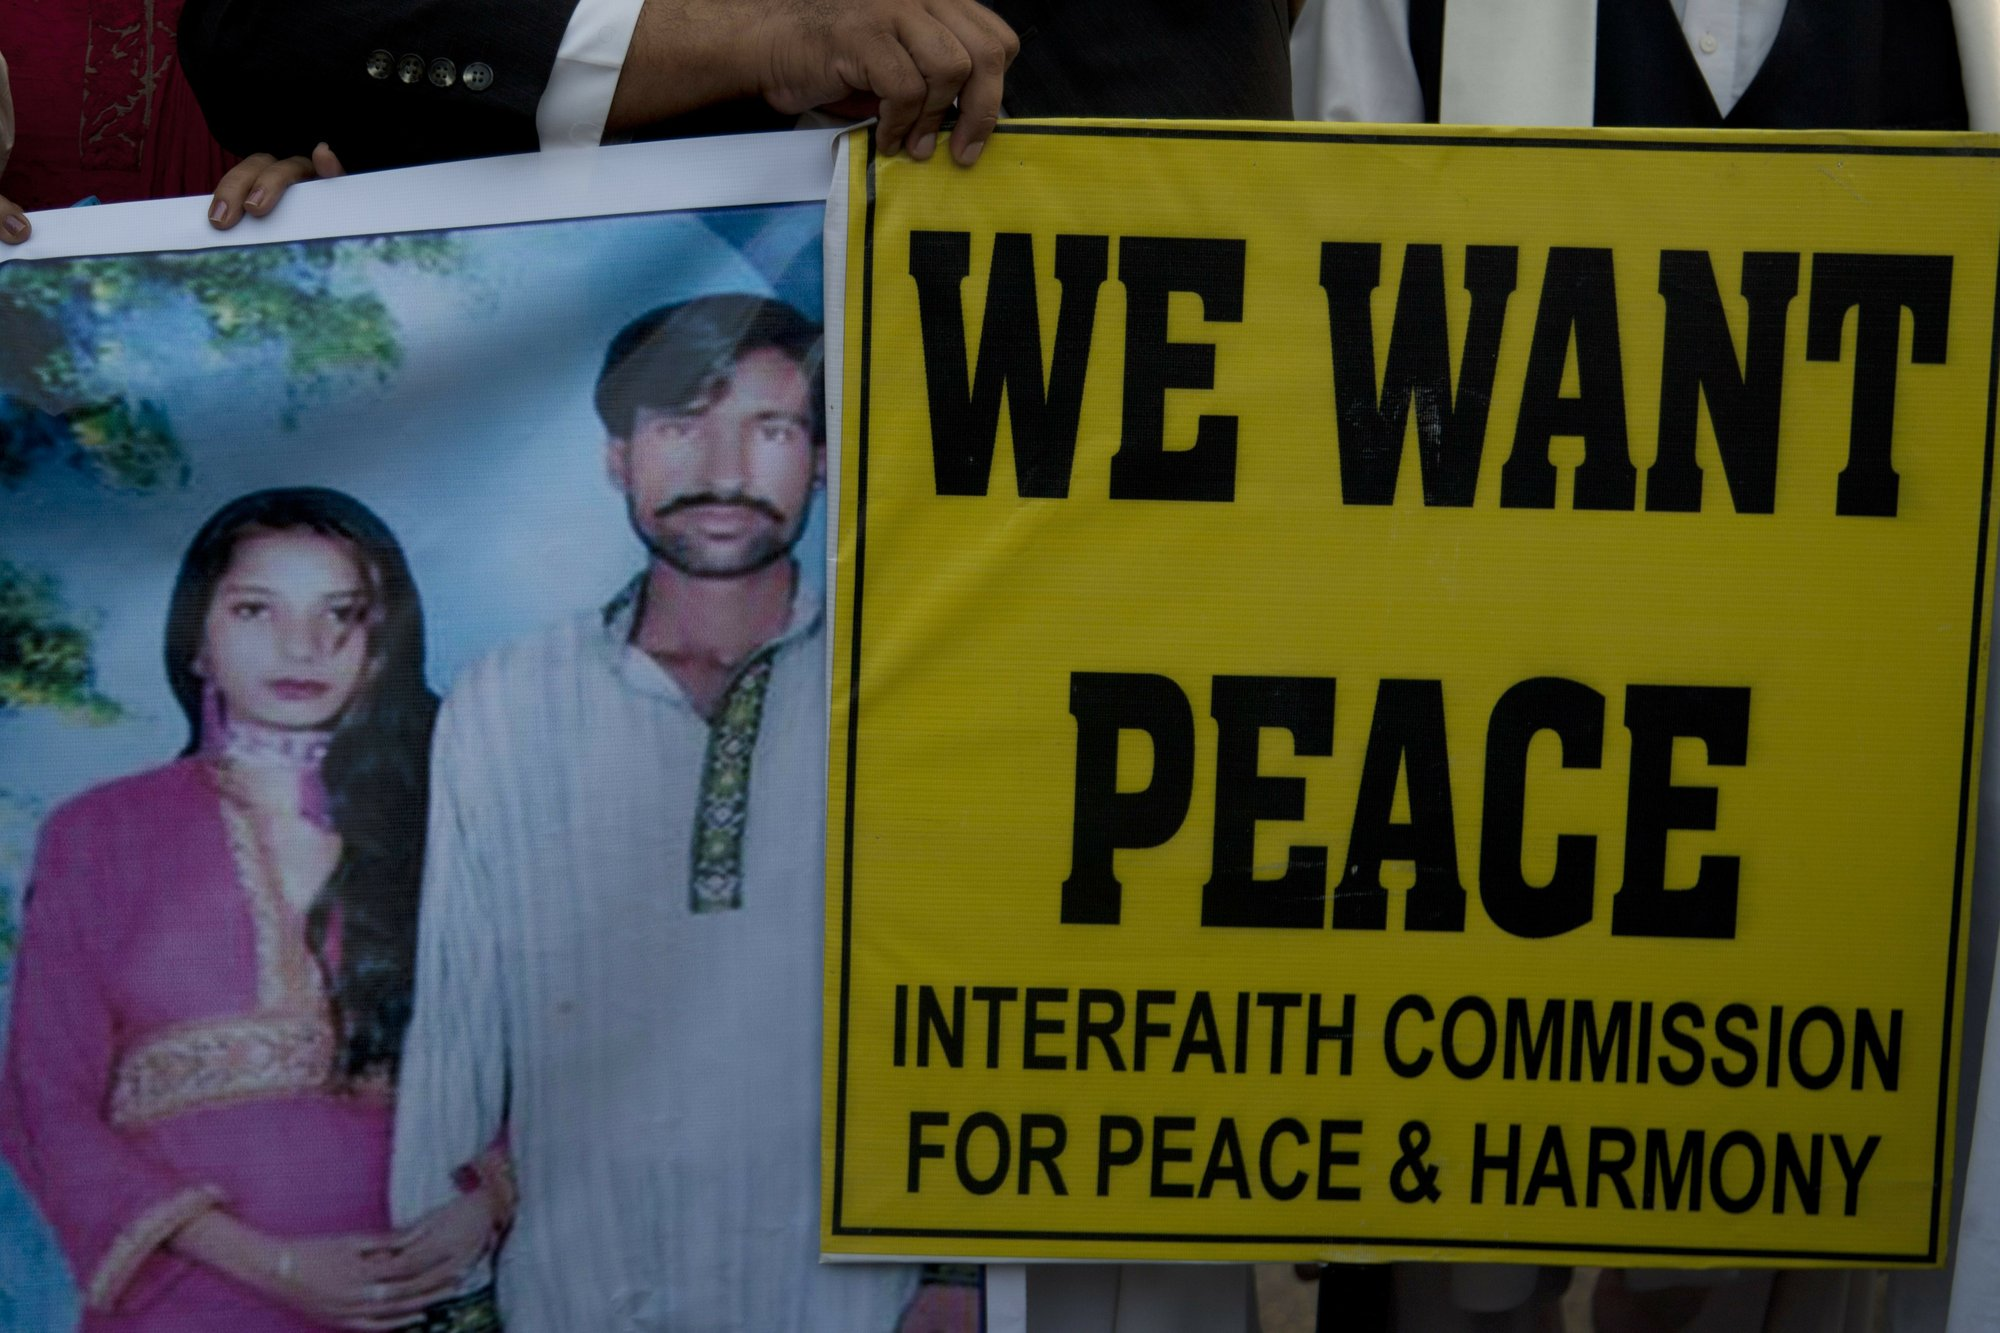 Pakistan upholds death for 3, acquits 2 in couple's killing